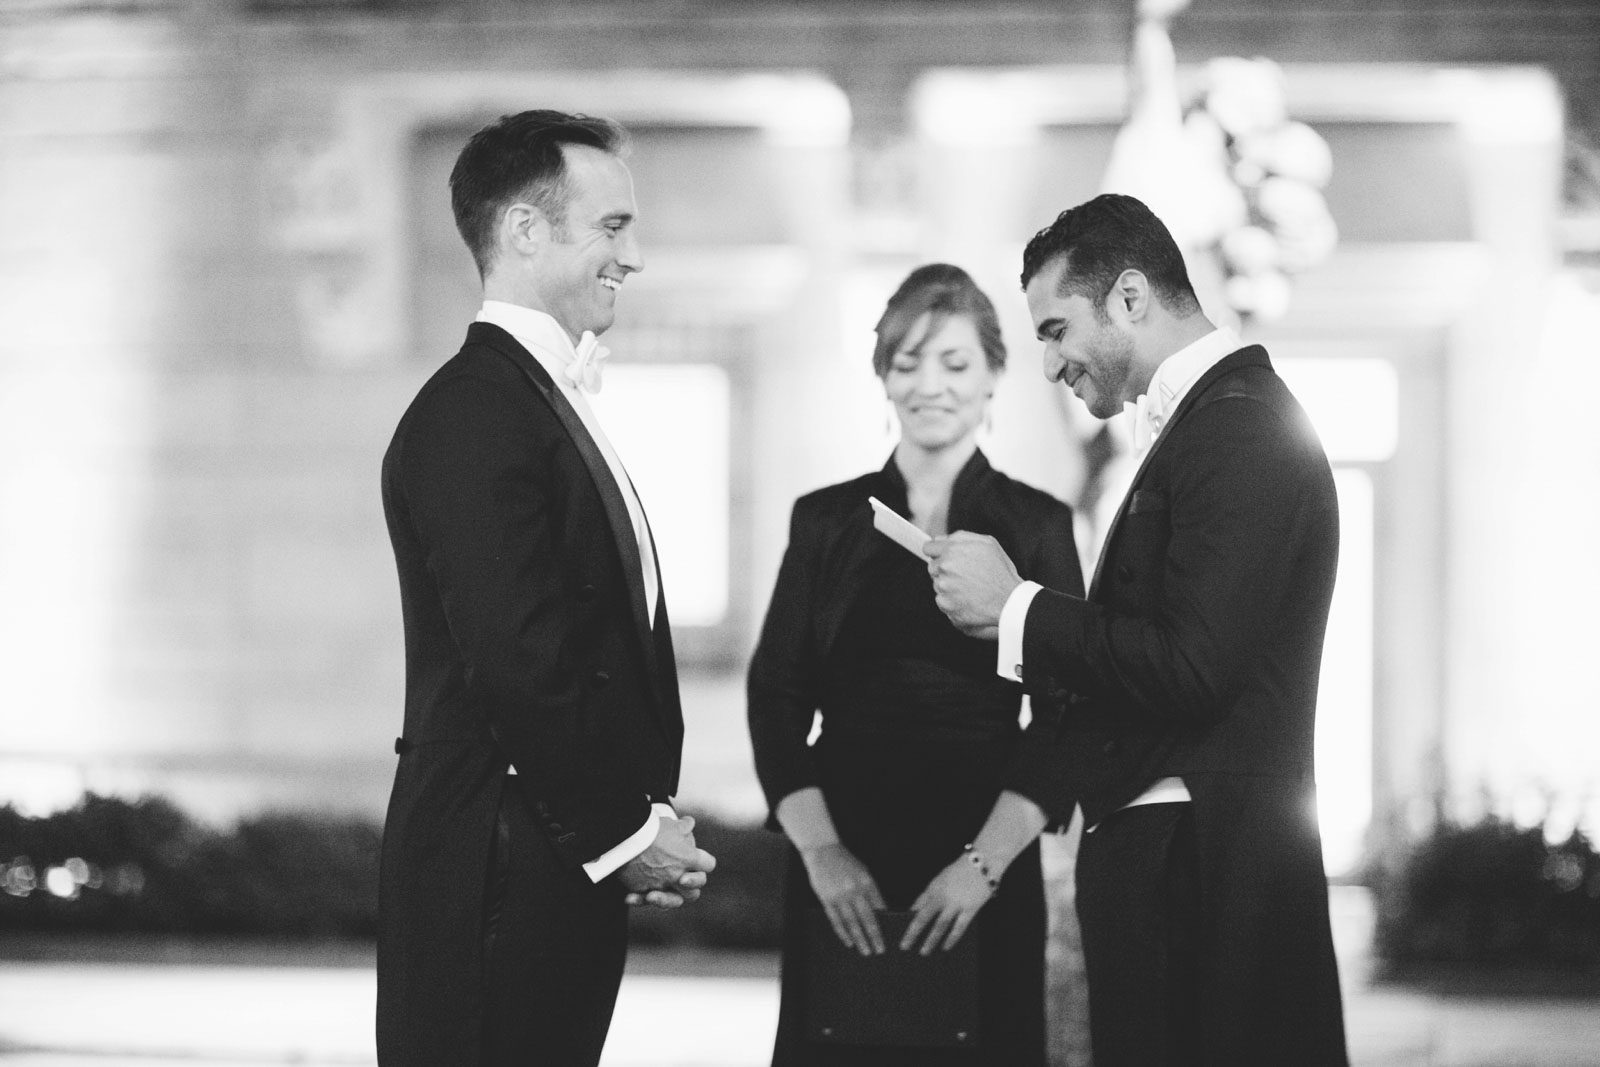 Intimate Black and white shot of groom saying his vows while other groom smiles lovingly